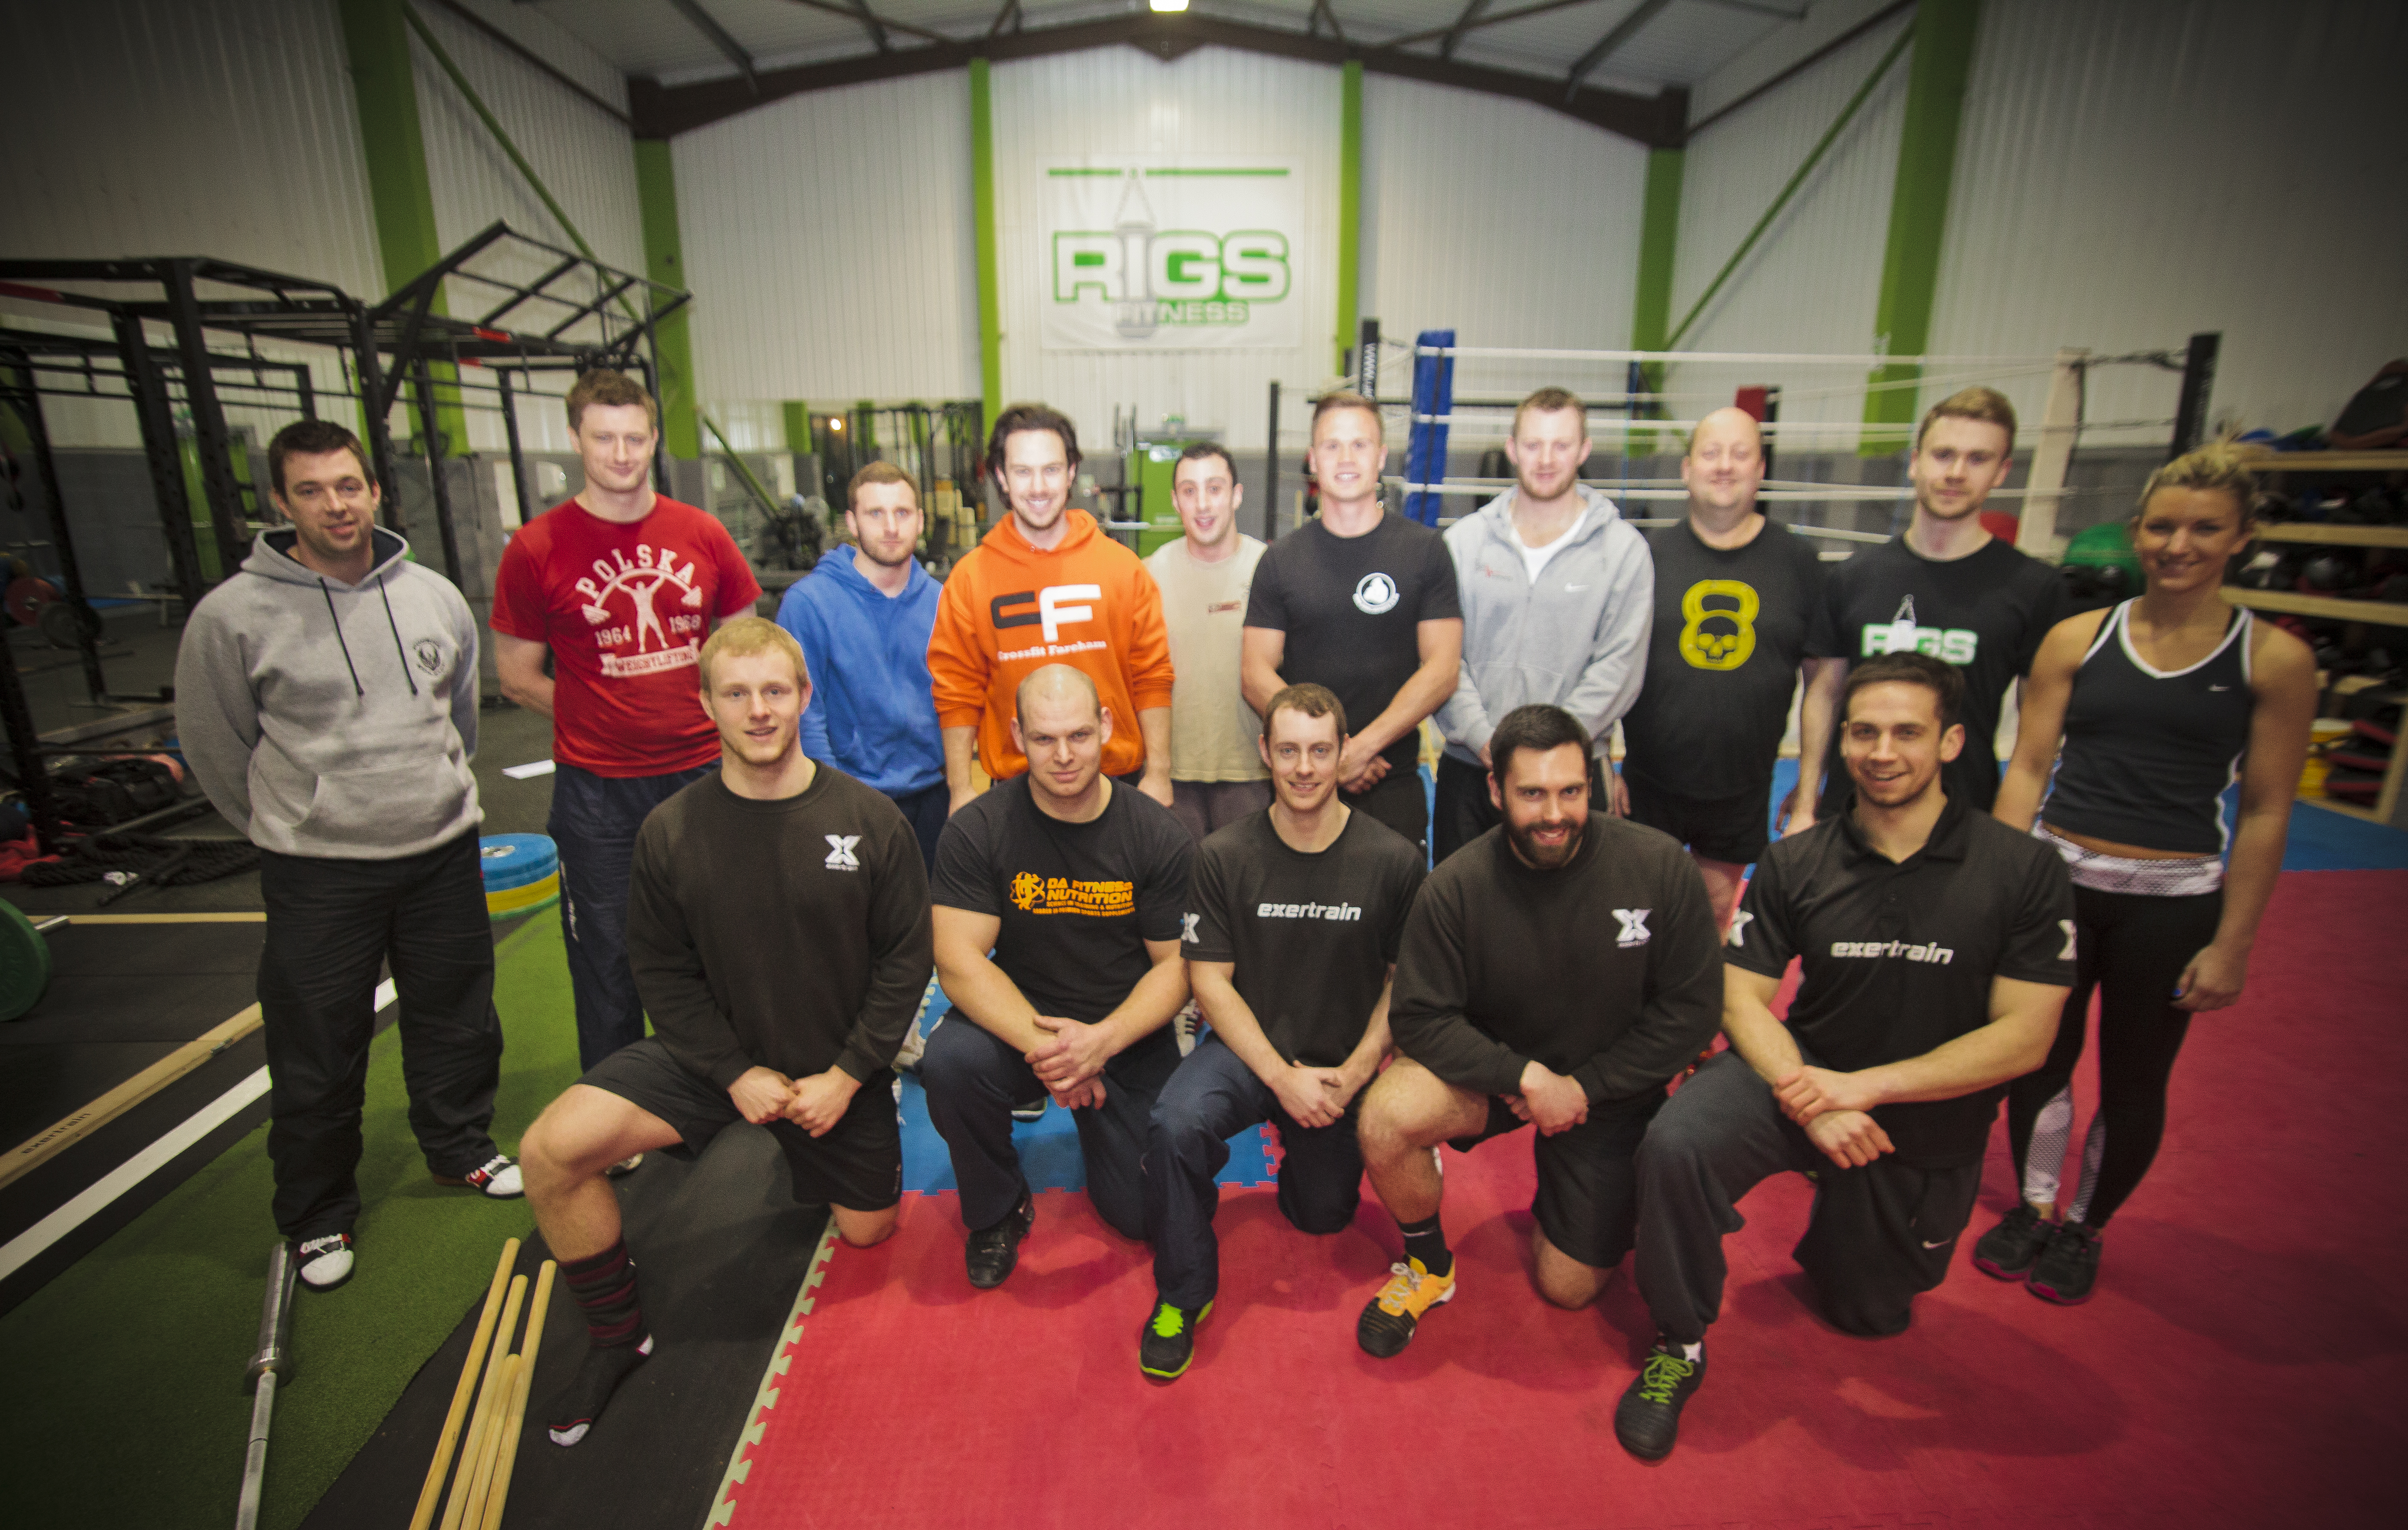 Olympic Weightlifting, Exertrain at Rigs Fitness